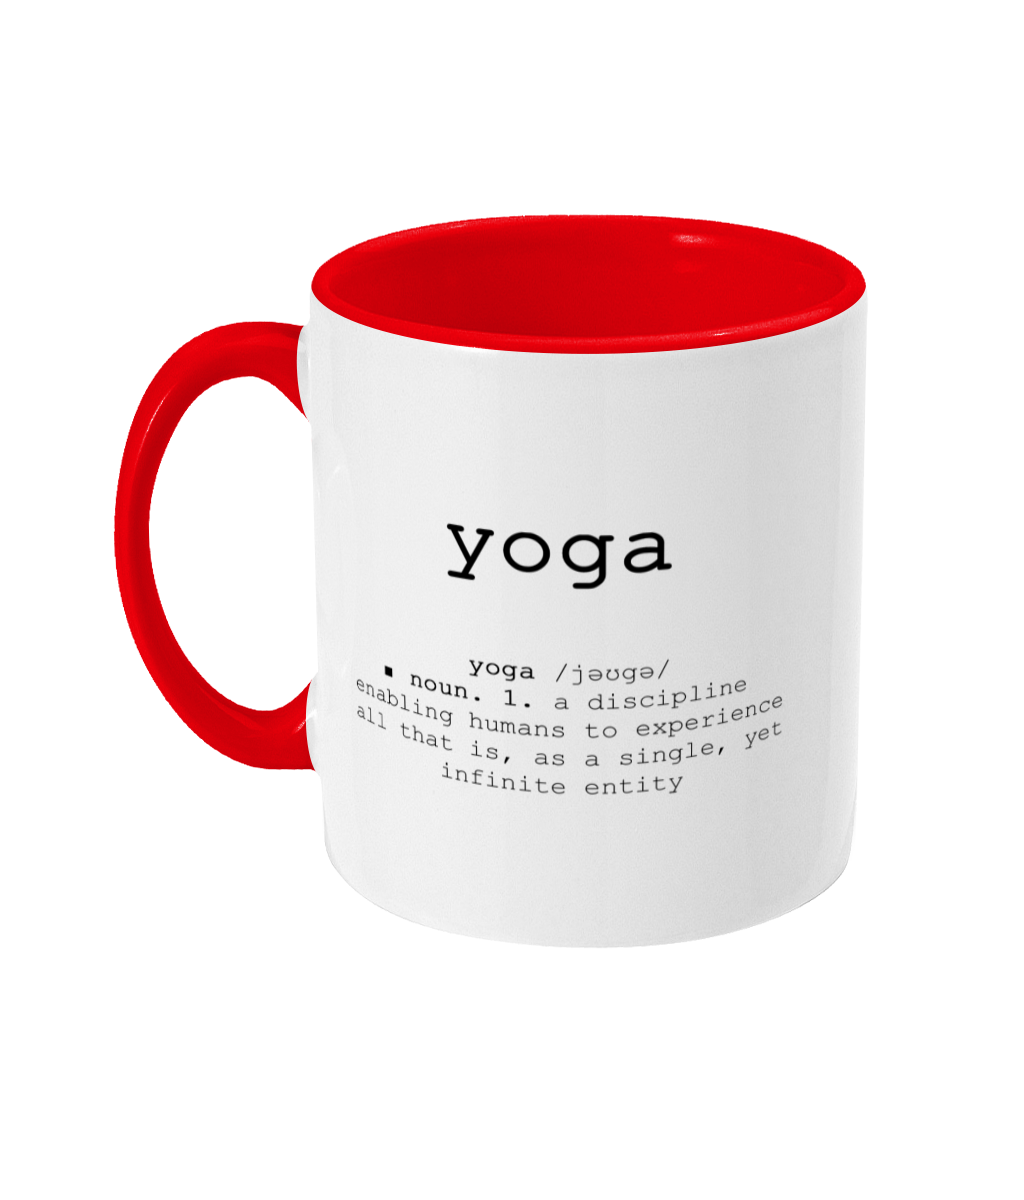 Yoga Definition Mug | Yoga Mug | Yoga Quote | Coffee Mug | |